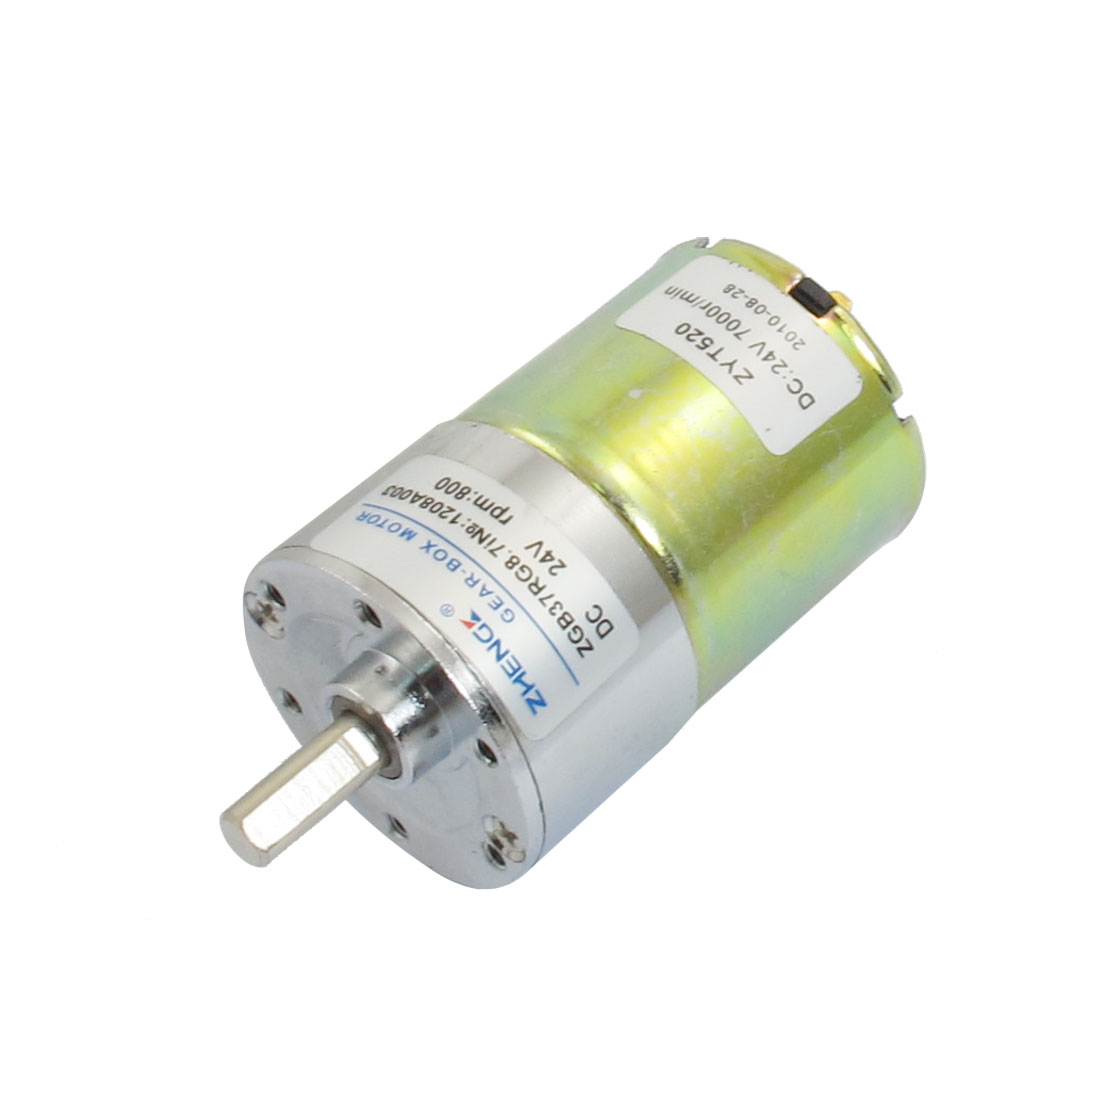 800RPM 24VDC 6mm Shaft Dia Speed Reduction Geared Motor